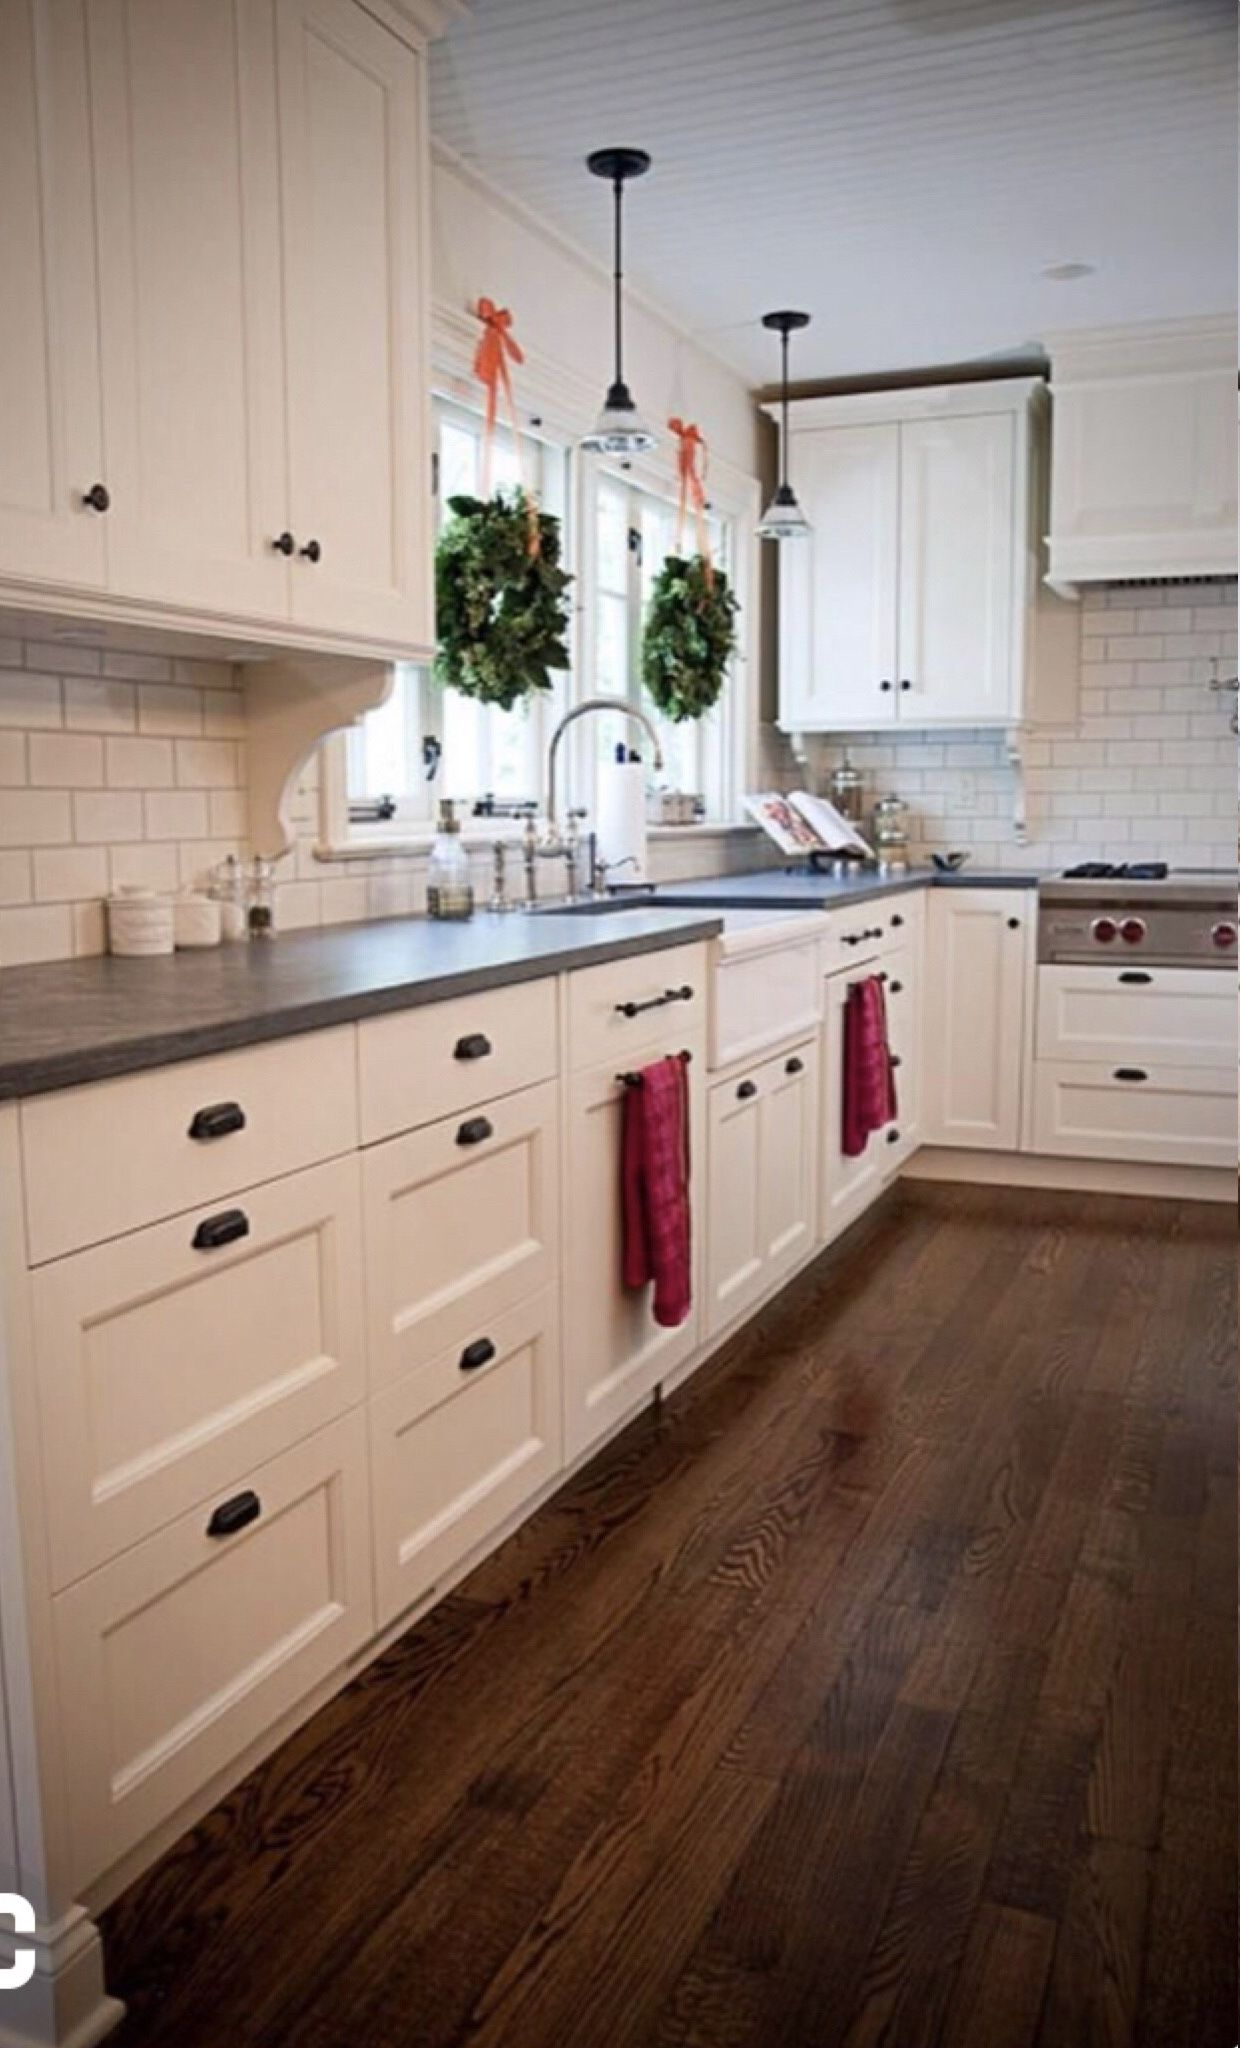 No Uppers Just Windows Along Sink Cabinet Wall Range Hood Another 2ish Feet Down To Add Mo Kitchen Cabinets Decor White Shaker Kitchen New Kitchen Cabinets